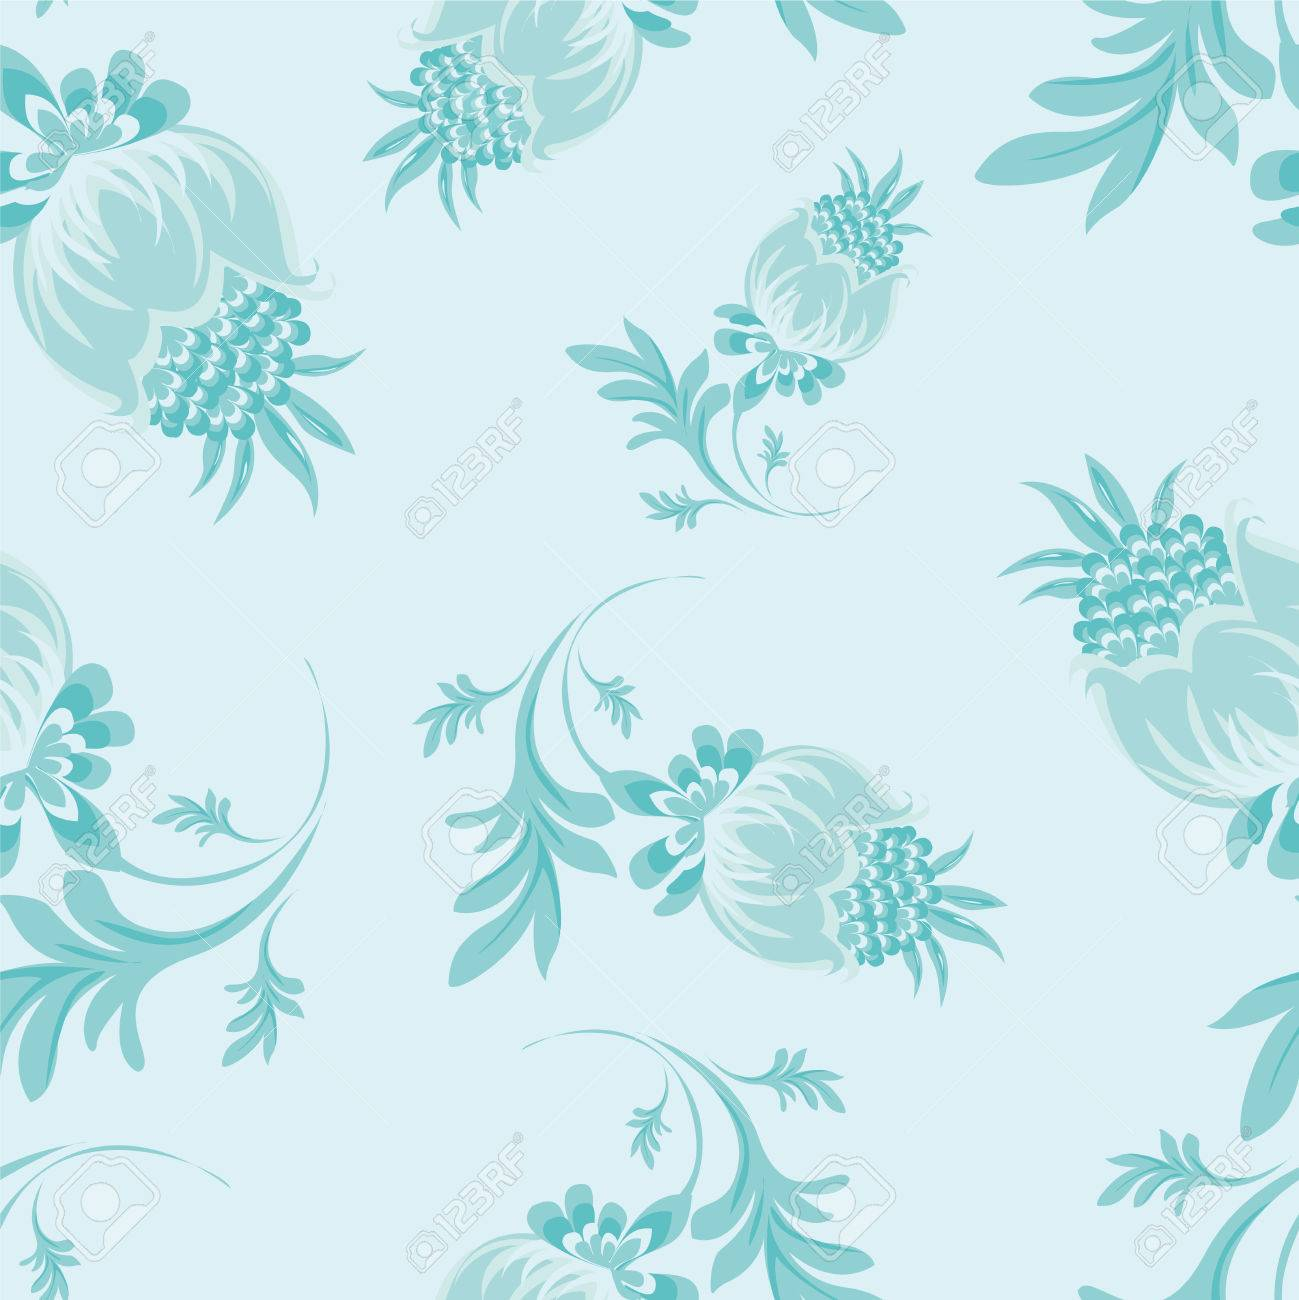 seamless floral patterns - 27552723